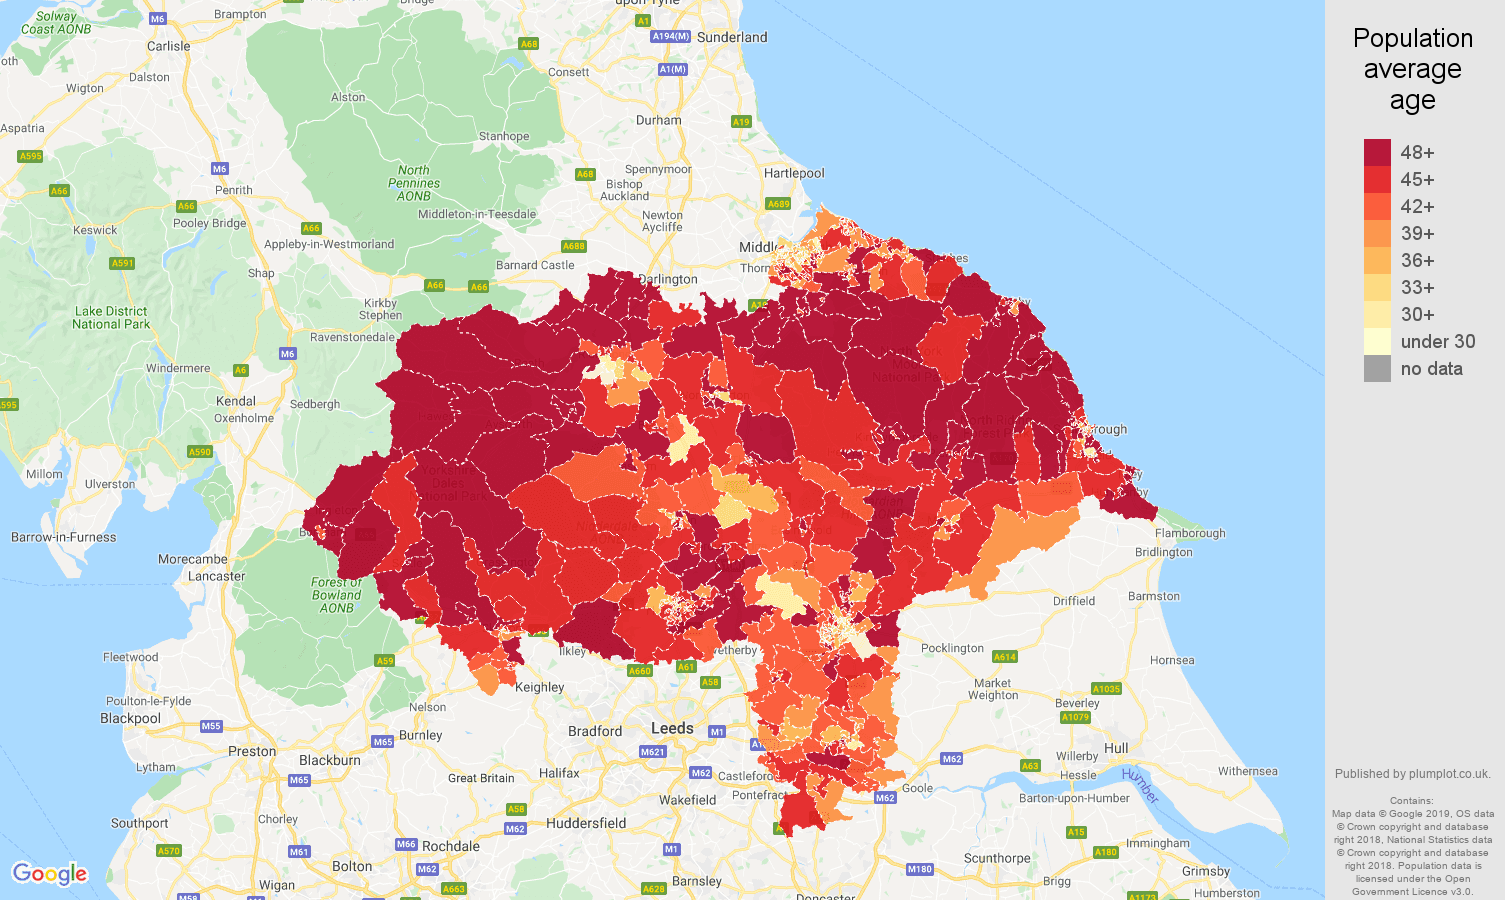 North Yorkshire population average age map